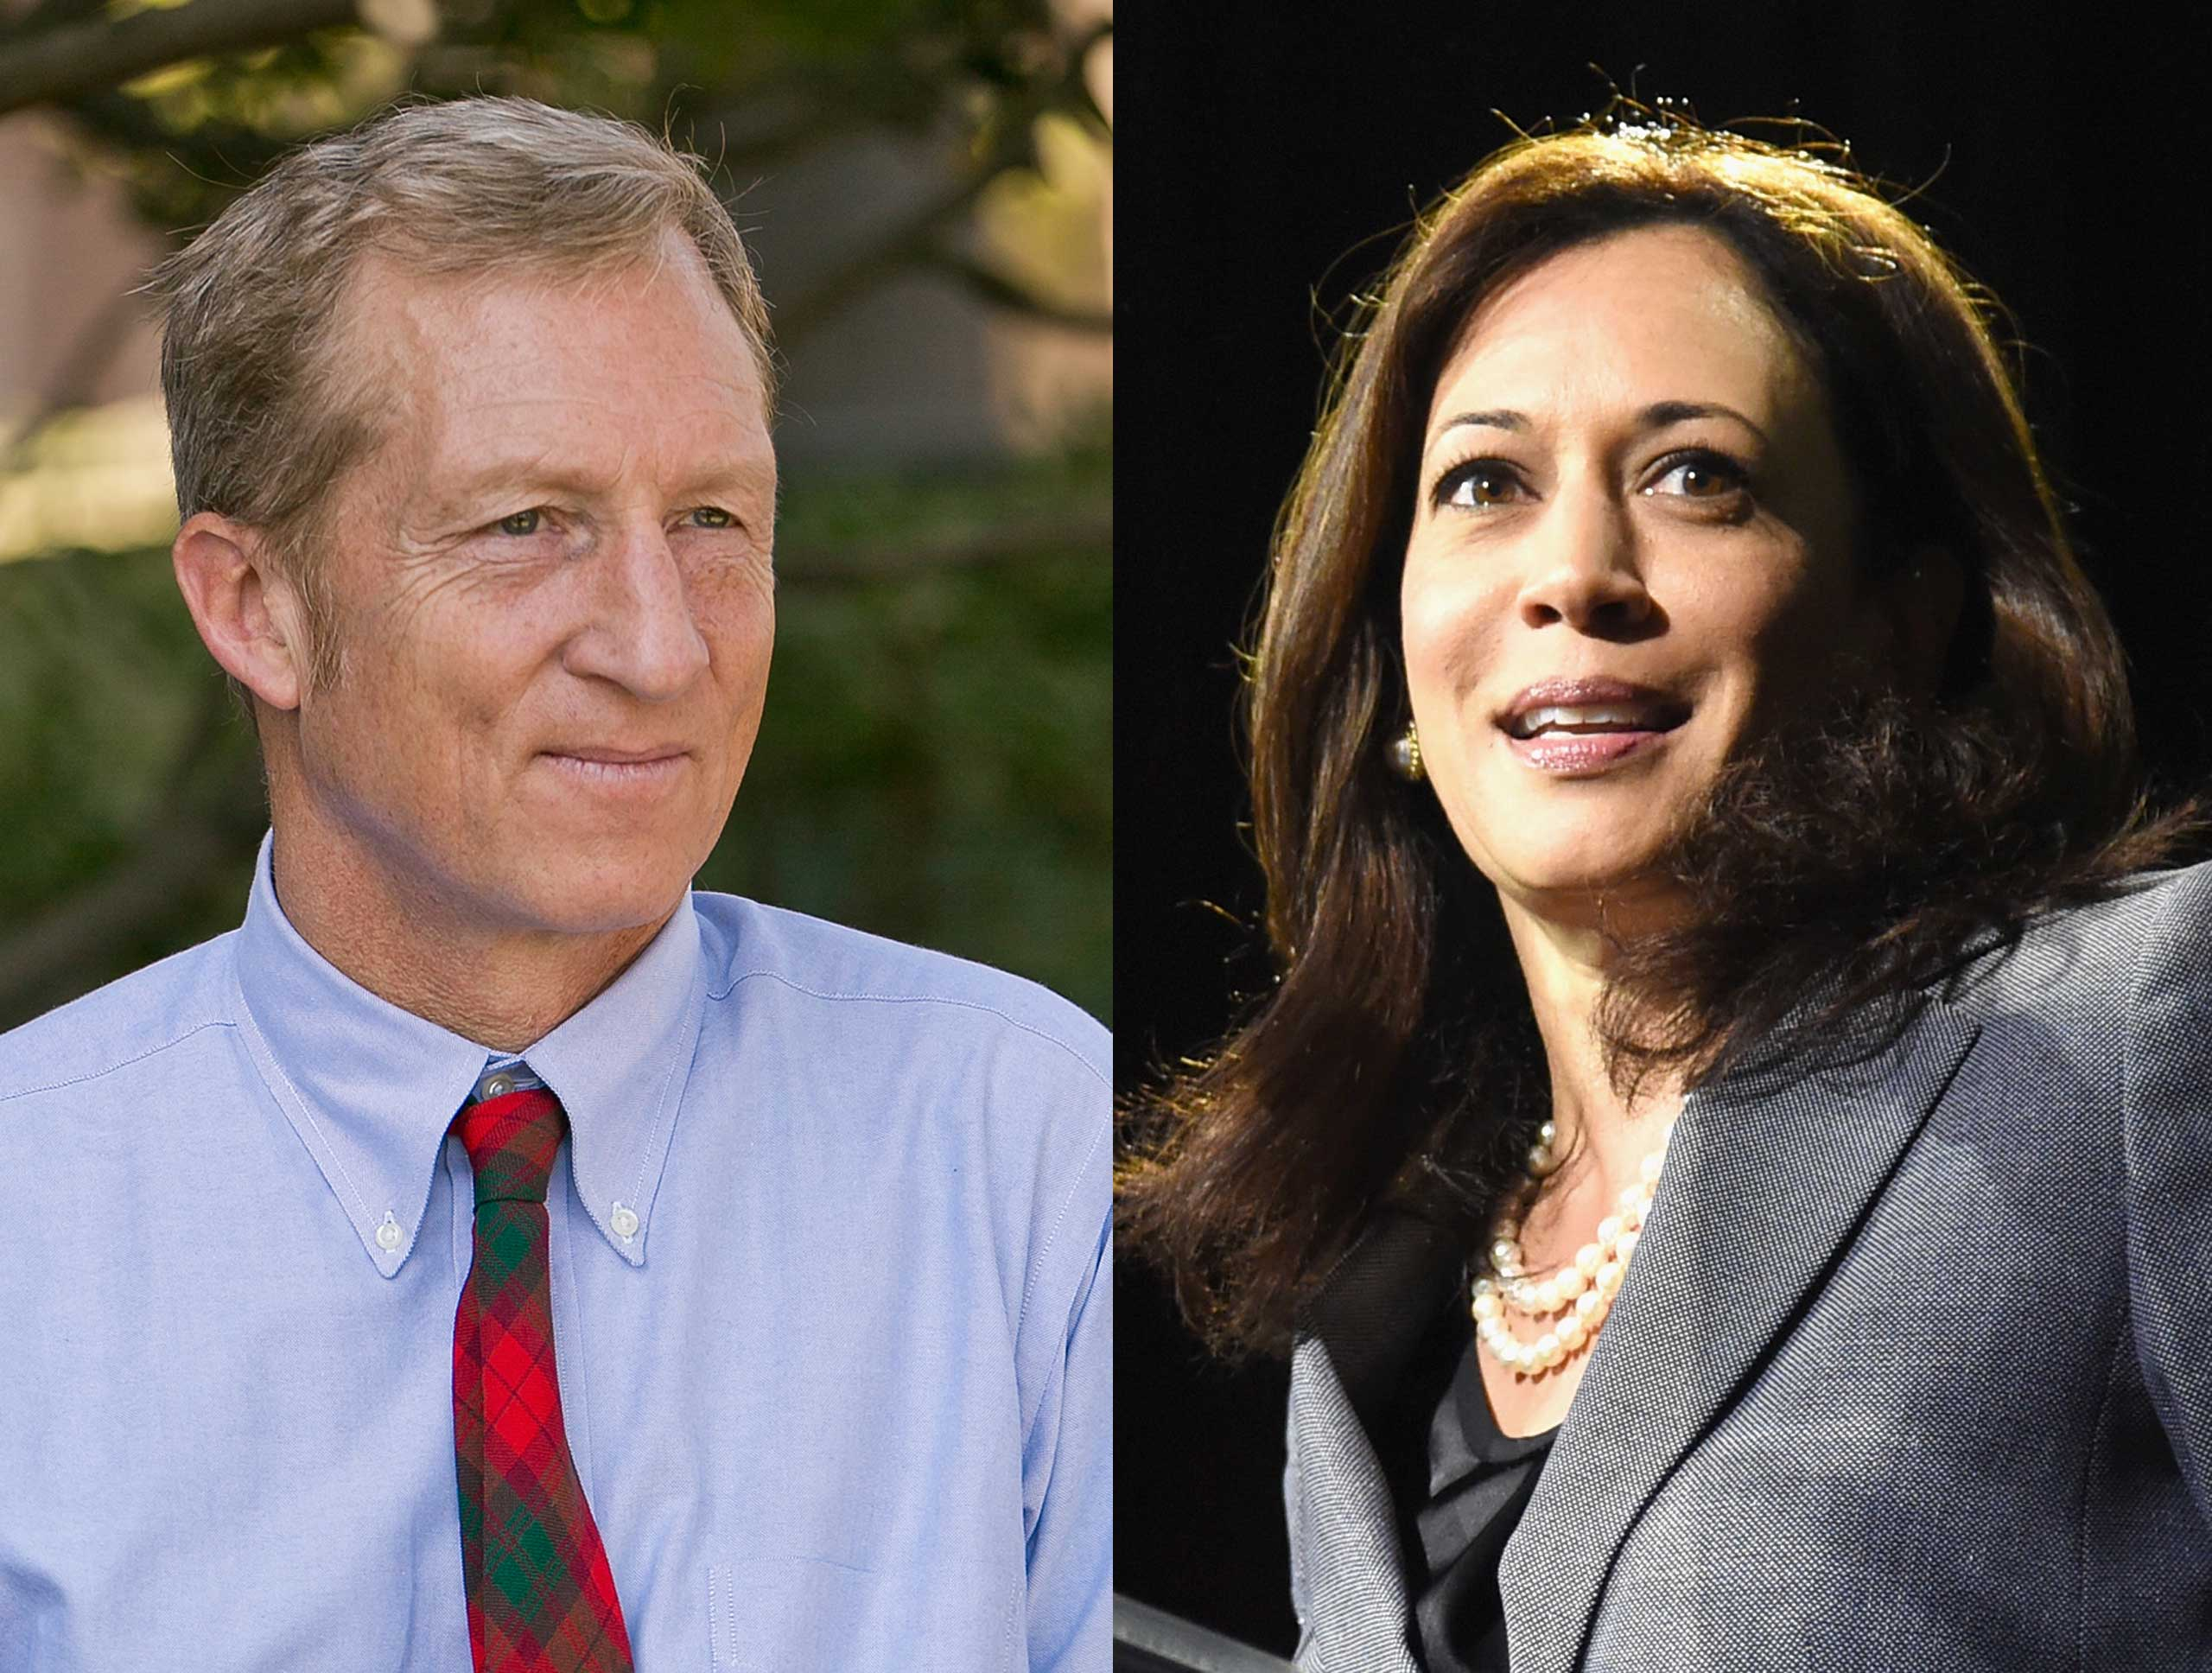 Left: Tom Steyer; Right: Kamala Harris